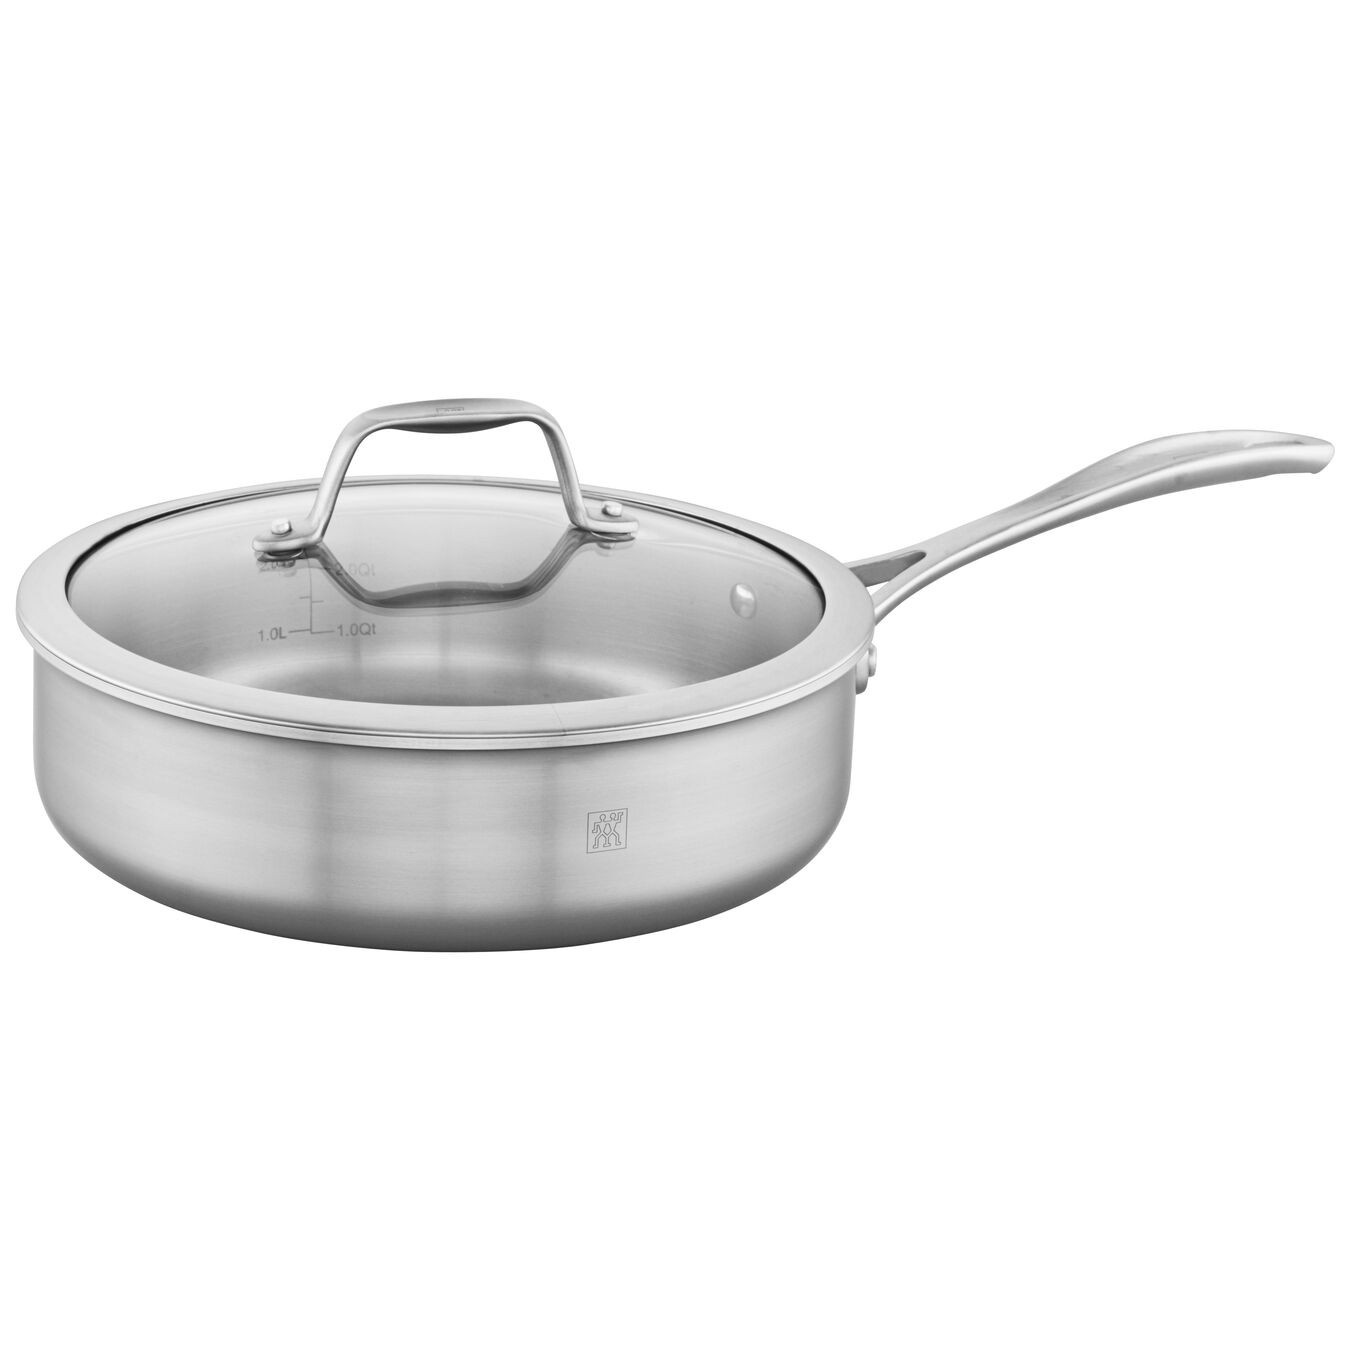 3-ply 7-pc Stainless Steel Cookware Set,,large 5